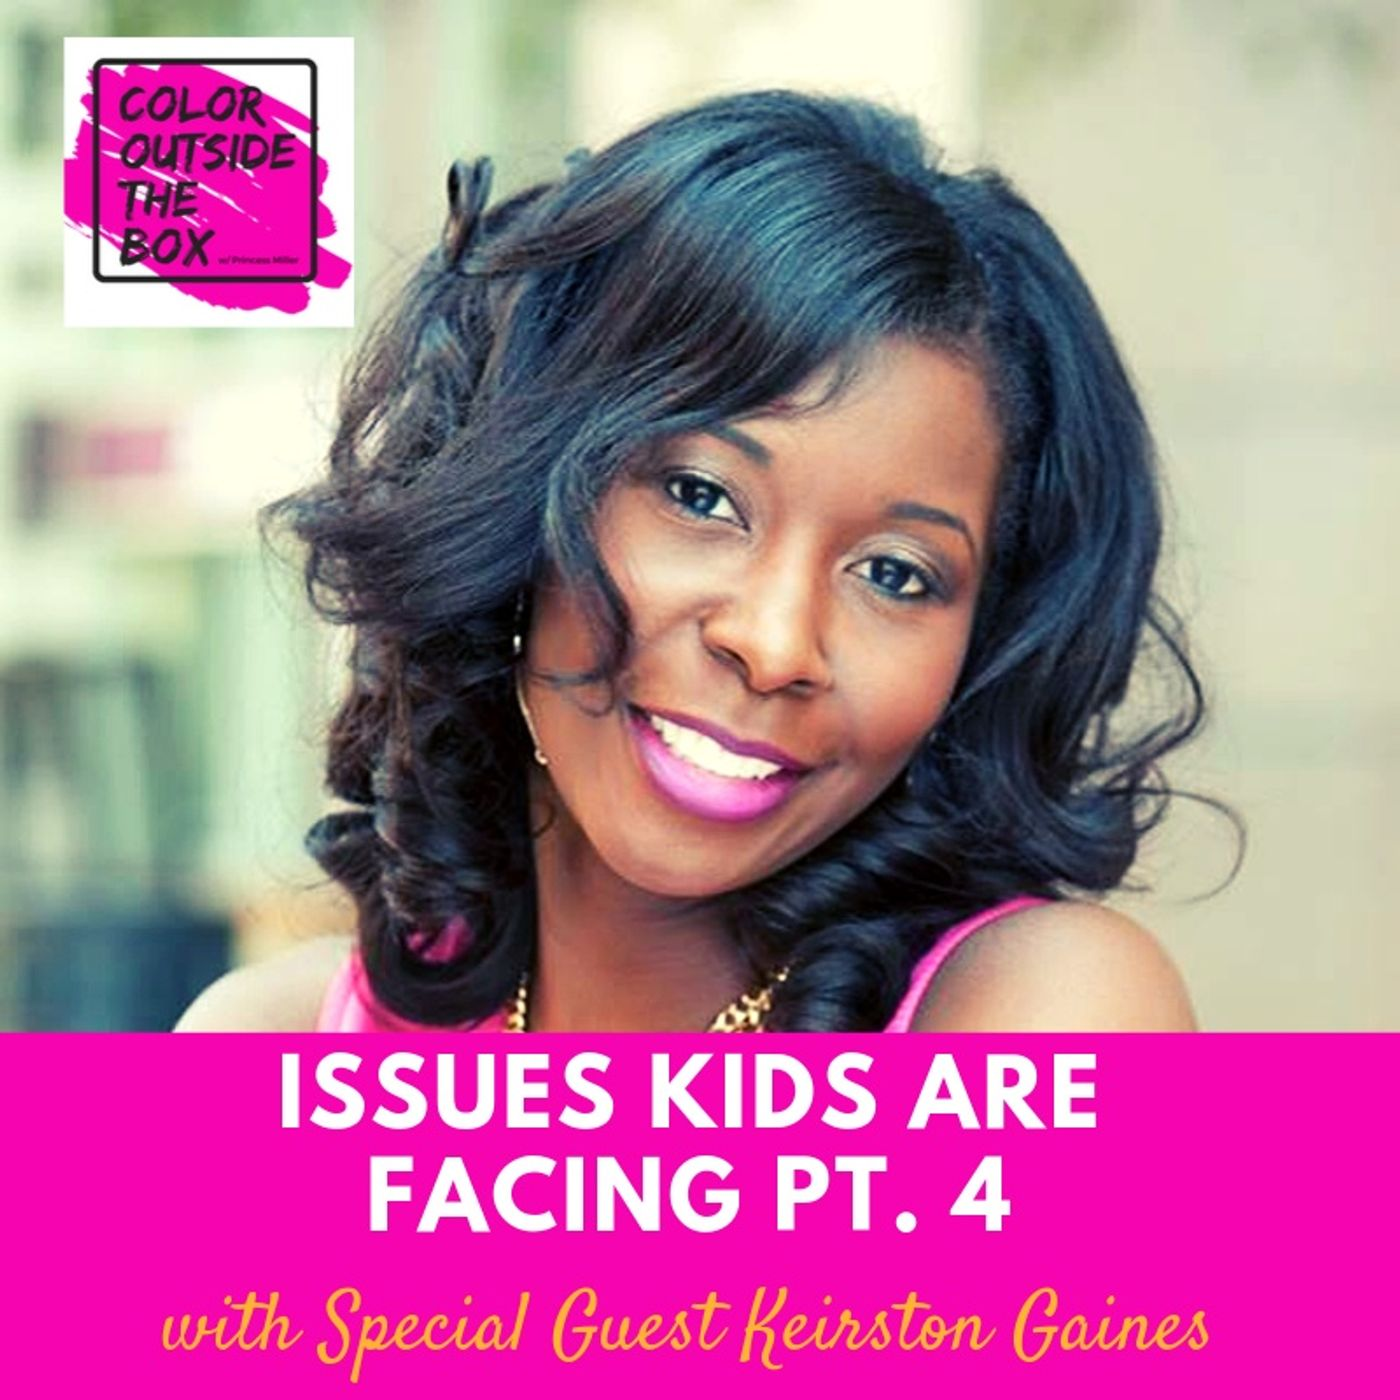 Issues Our Kids are Facing pt.4 with Keirston Gaines